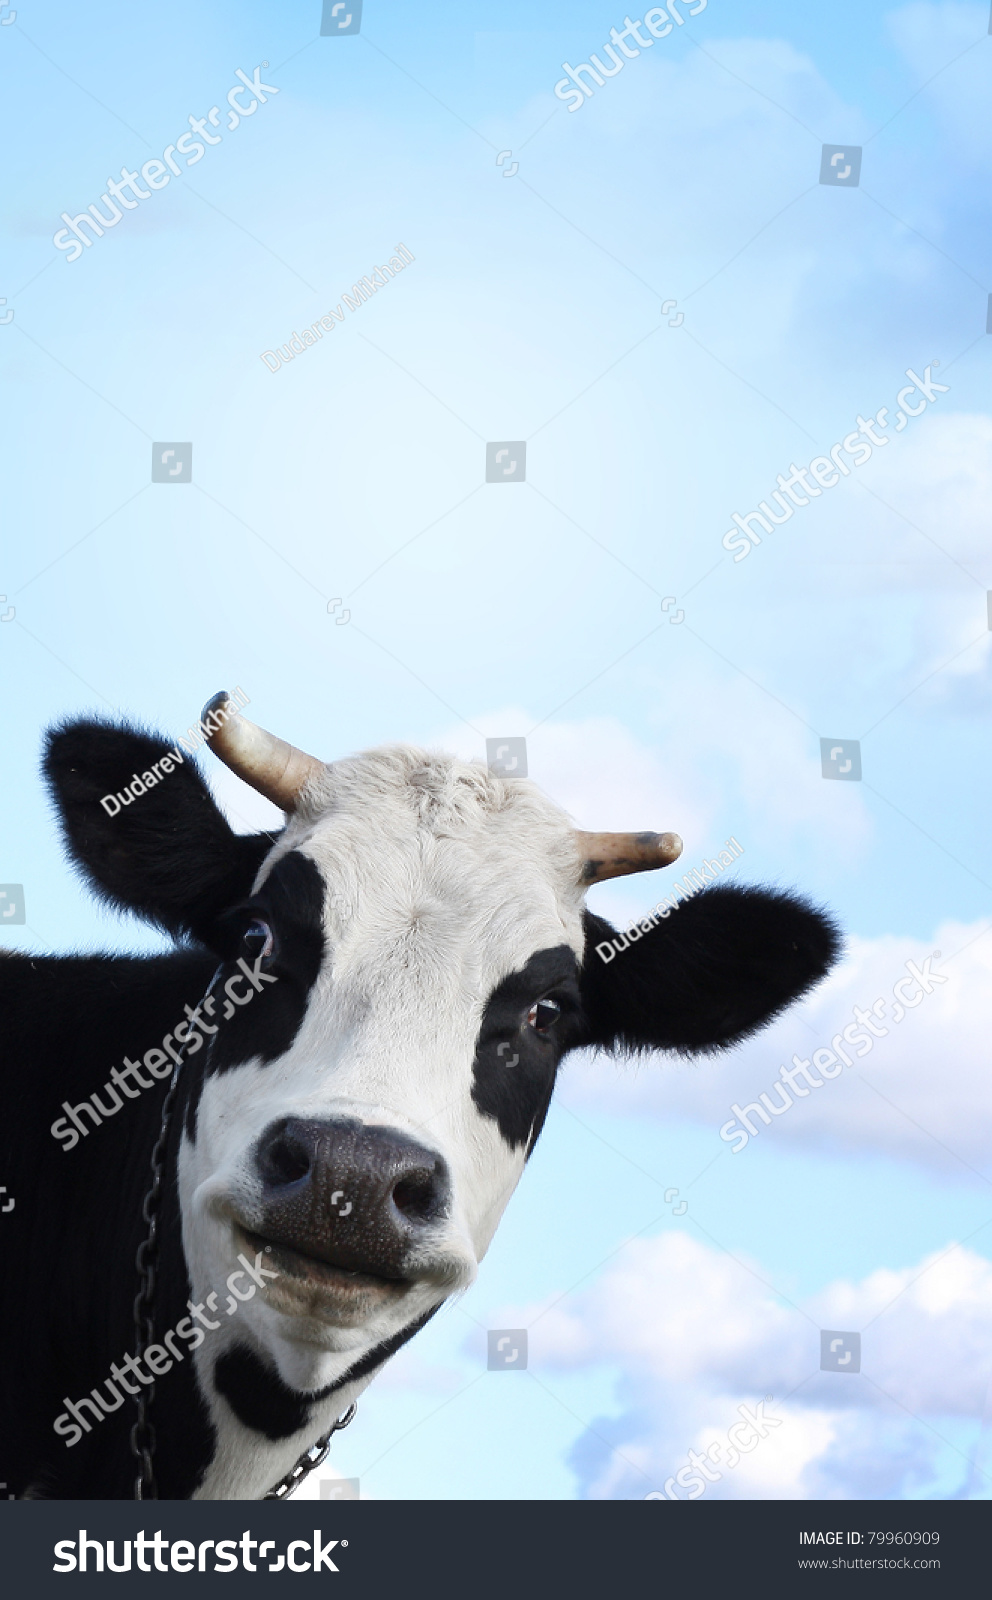 Funny cow smiling - photo#21